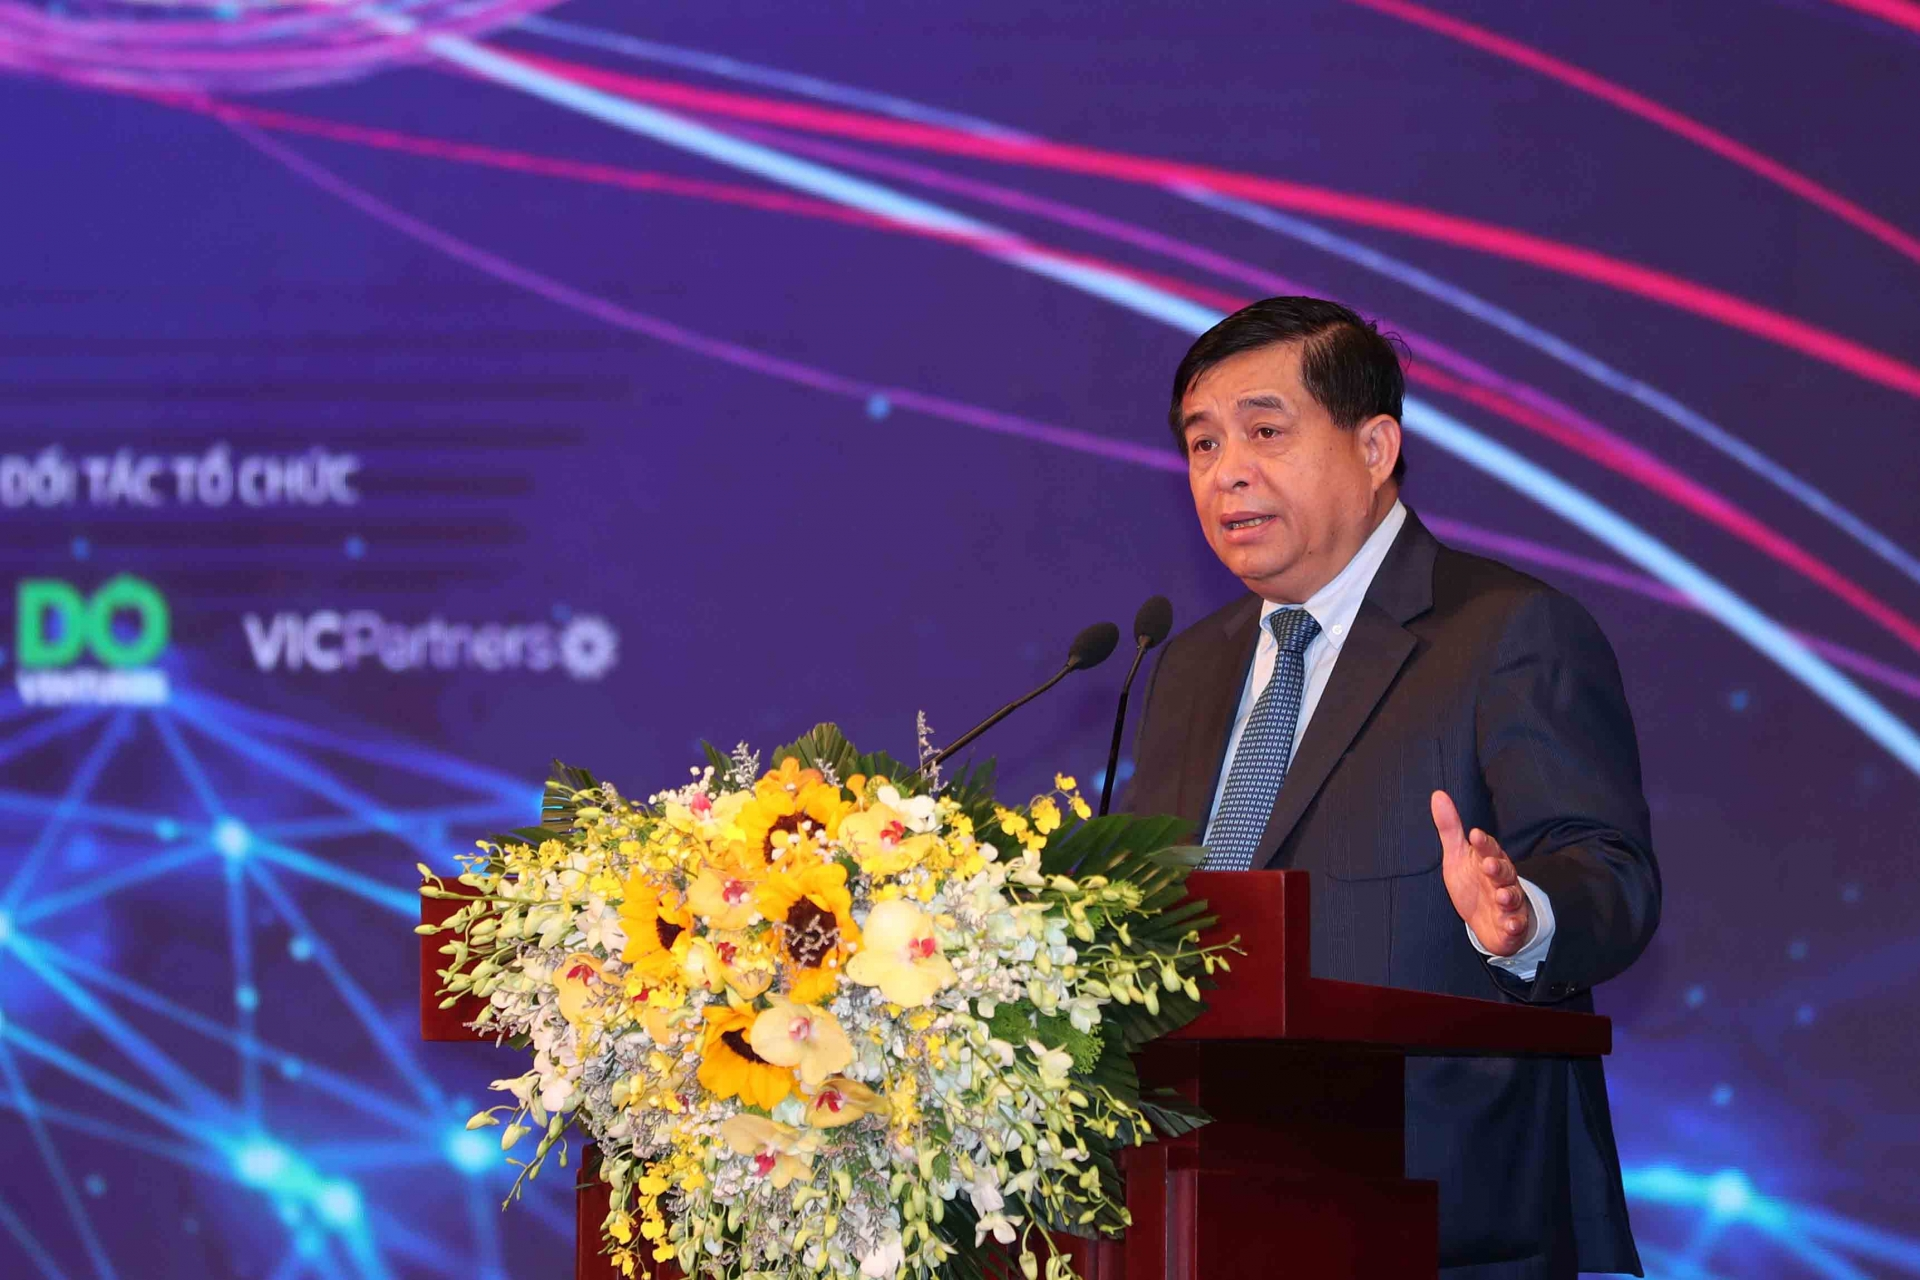 815 million ready for vietnamese startup projects